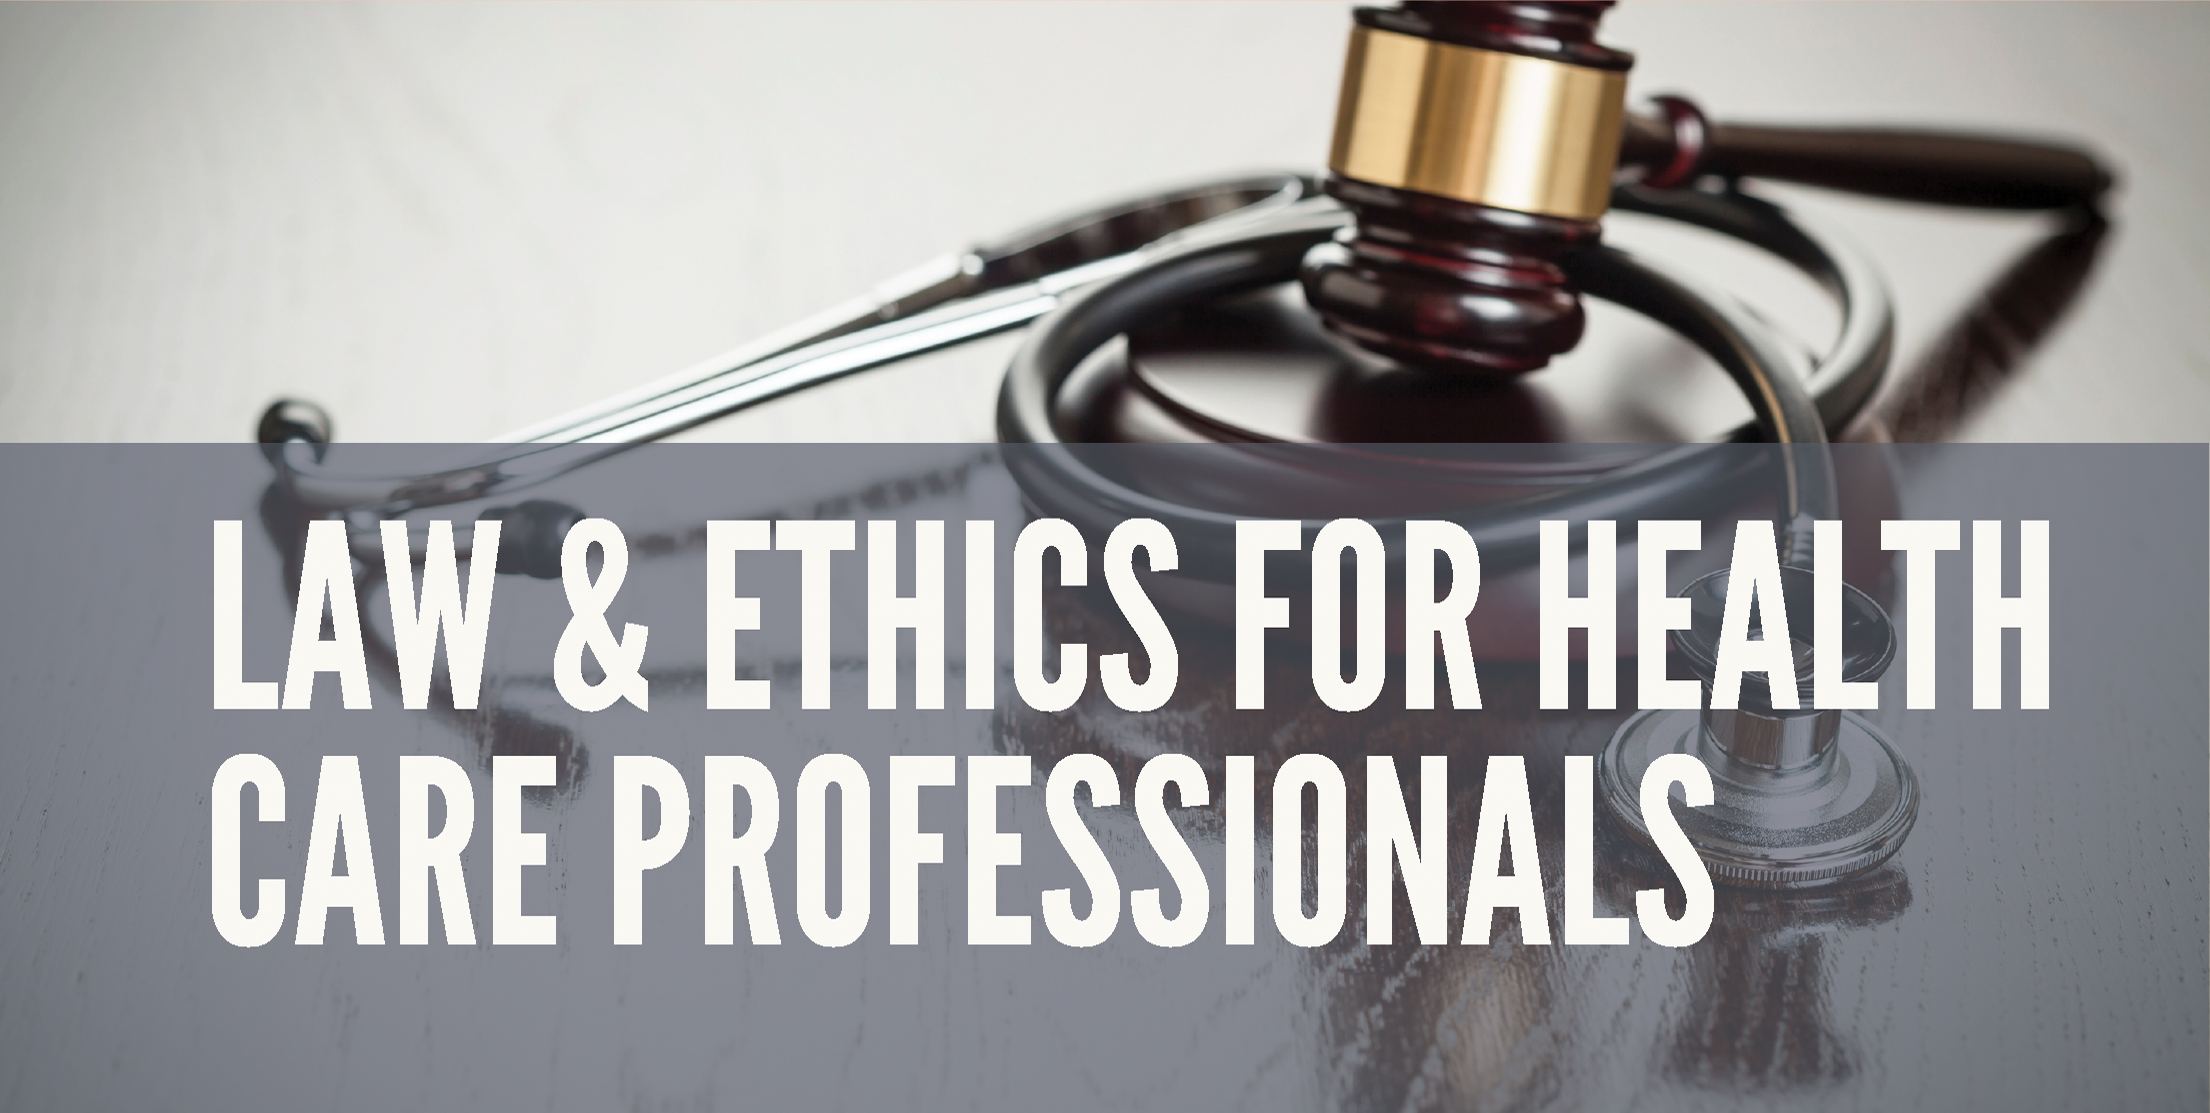 Law & Ethics For Health Care Professionals - This course is perfect for any health care worker as it illustrates the numerous legal and ethical issues that health care professionals face every day. The topics are derived from real-life experiences and dilemmas from a variety of health care practitioners. Through the use of Learning Outcomes, Key Terms, Ethics Issues, Chapter Reviews, Case Studies, Internet Activities, Court Cases, and Video Vignettes, students hear from health care practitioners in various locations throughout the United States as they encounter legal and ethical problems and situations. Students will practice critical thinking skills to decide how to resolve the real-life situations or theoretical scenarios, determine why the court made a particular ruling and decide how the issues are relevant to the health care profession they will encounter today. Course Duration: 5 weeks